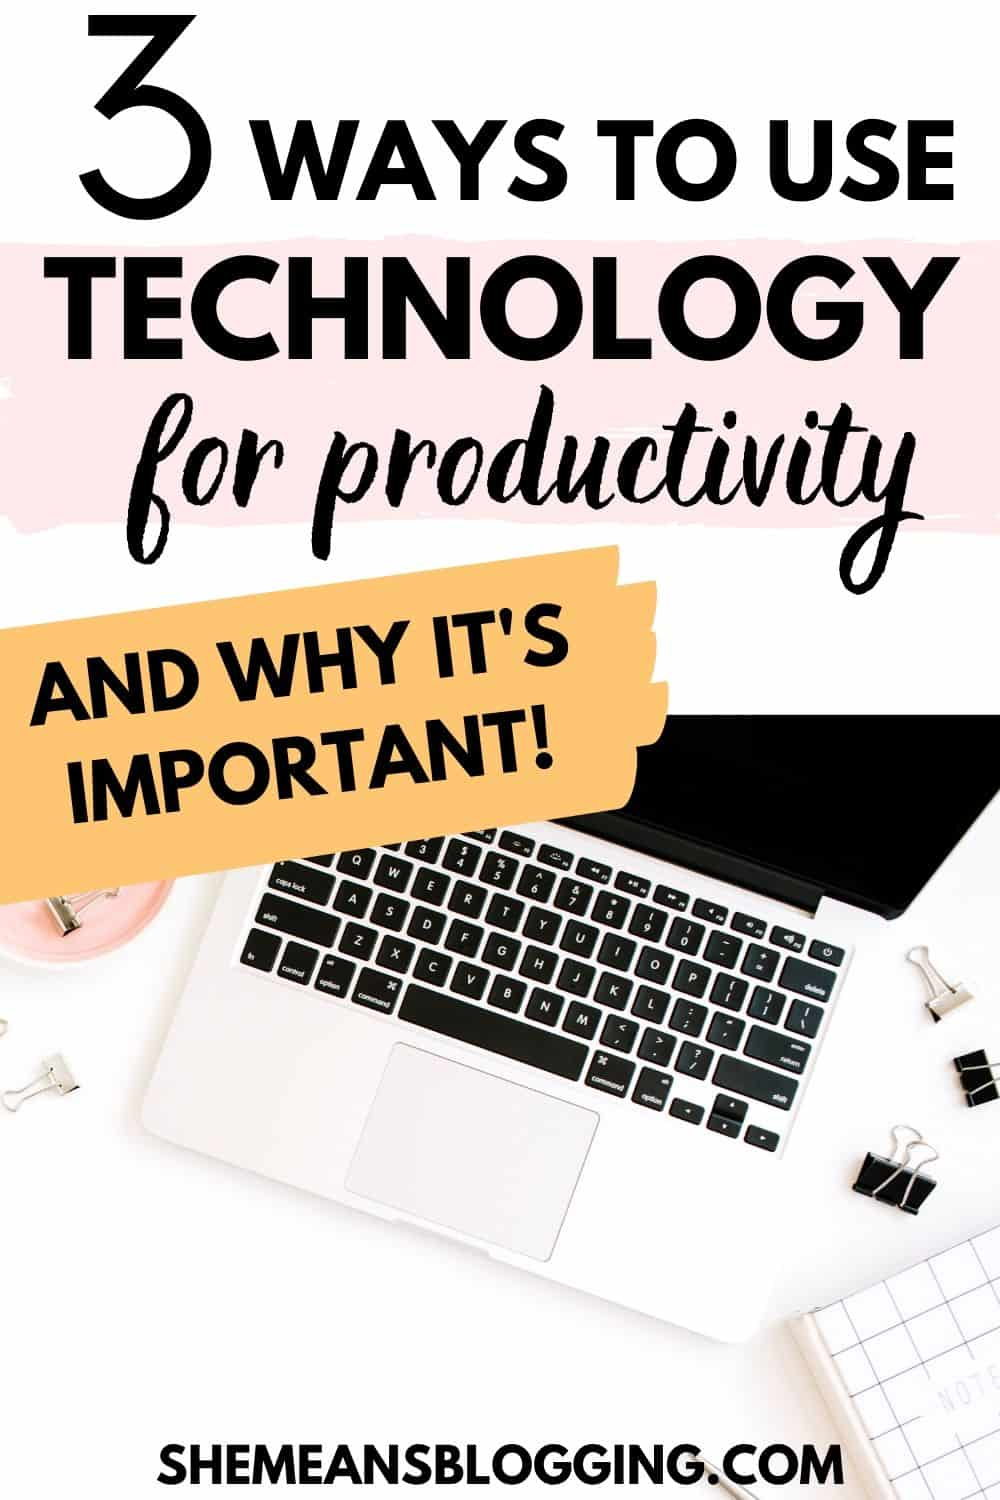 How using technology improves productivity? Here are 3 simple ways to use technology and other productivity apps to increase efficiency while you work from home or at workplace! Using technology for productivity is so crucial. Find out how? #productivitytips #workfromhome